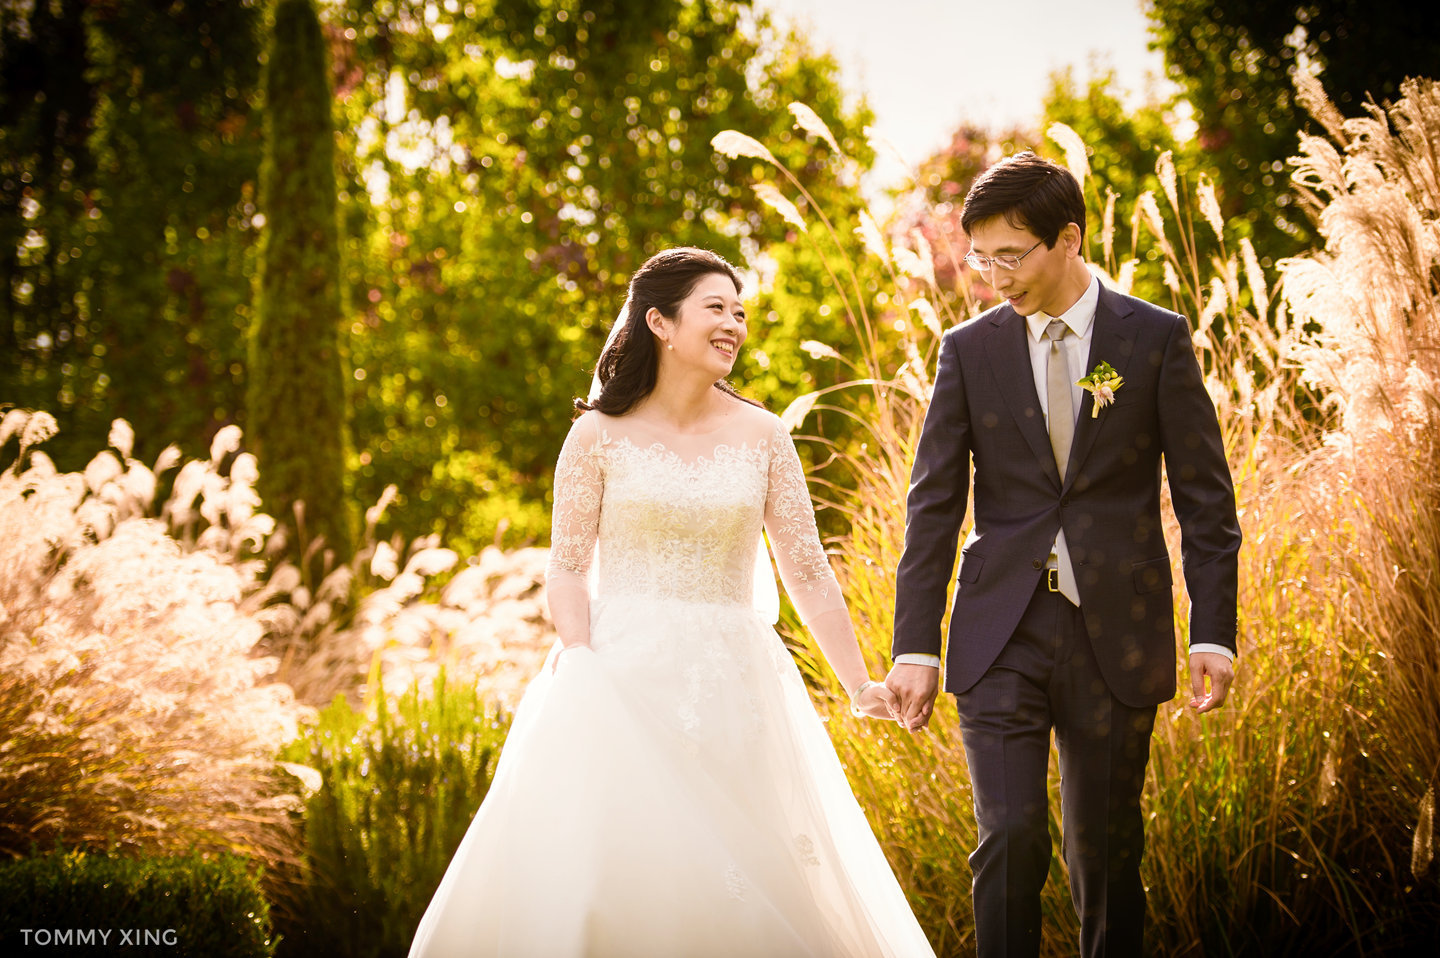 San Francisco Wedding Photography Valley Presbyterian Church WEDDING Tommy Xing Photography 洛杉矶旧金山婚礼婚纱照摄影师041.jpg